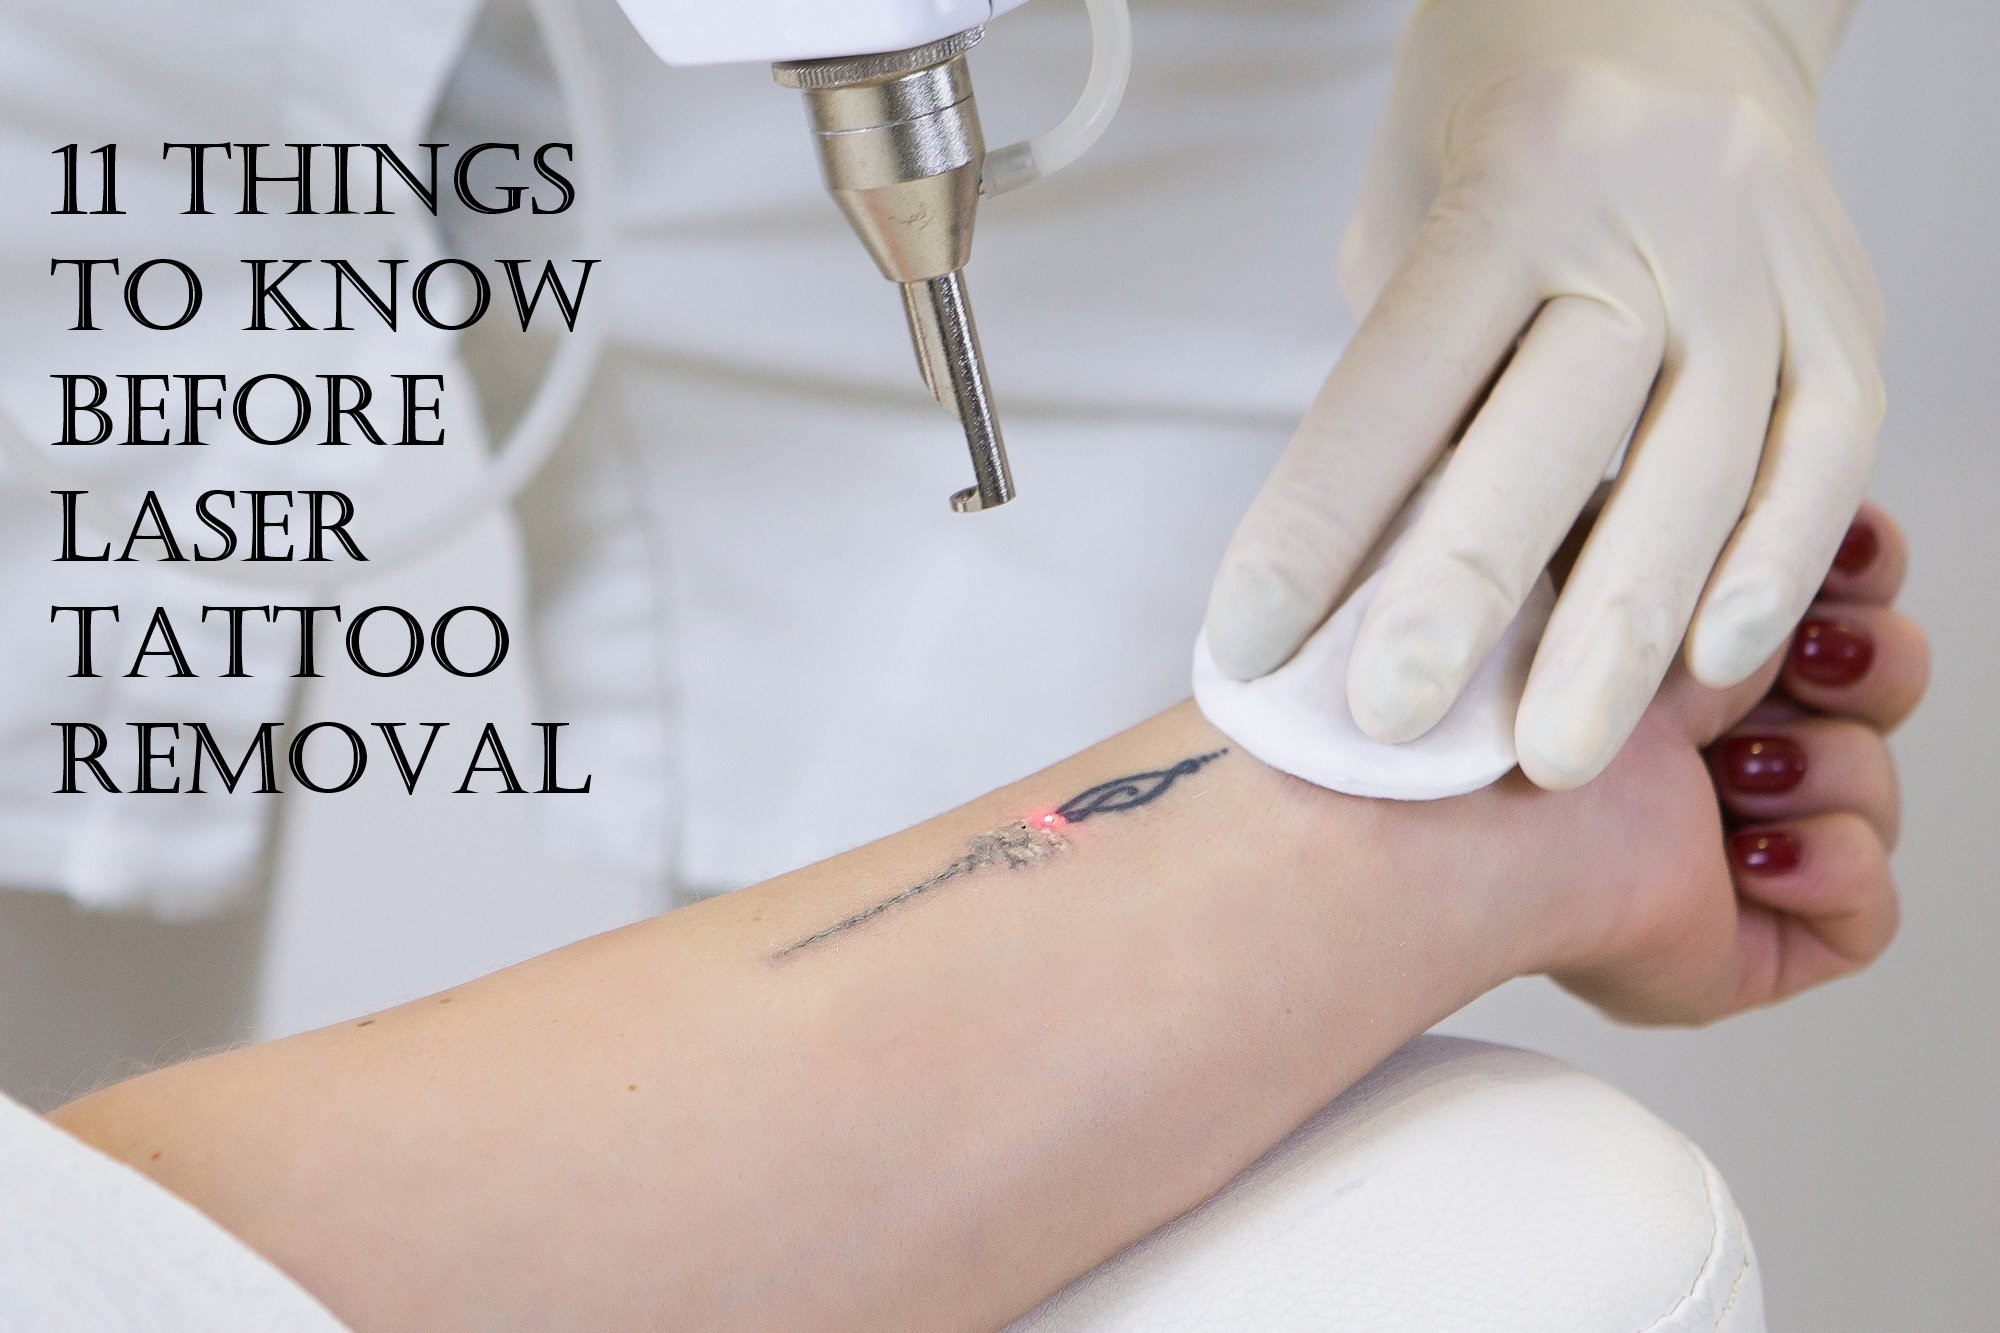 11 Things To Know Before Laser Tattoo Removal